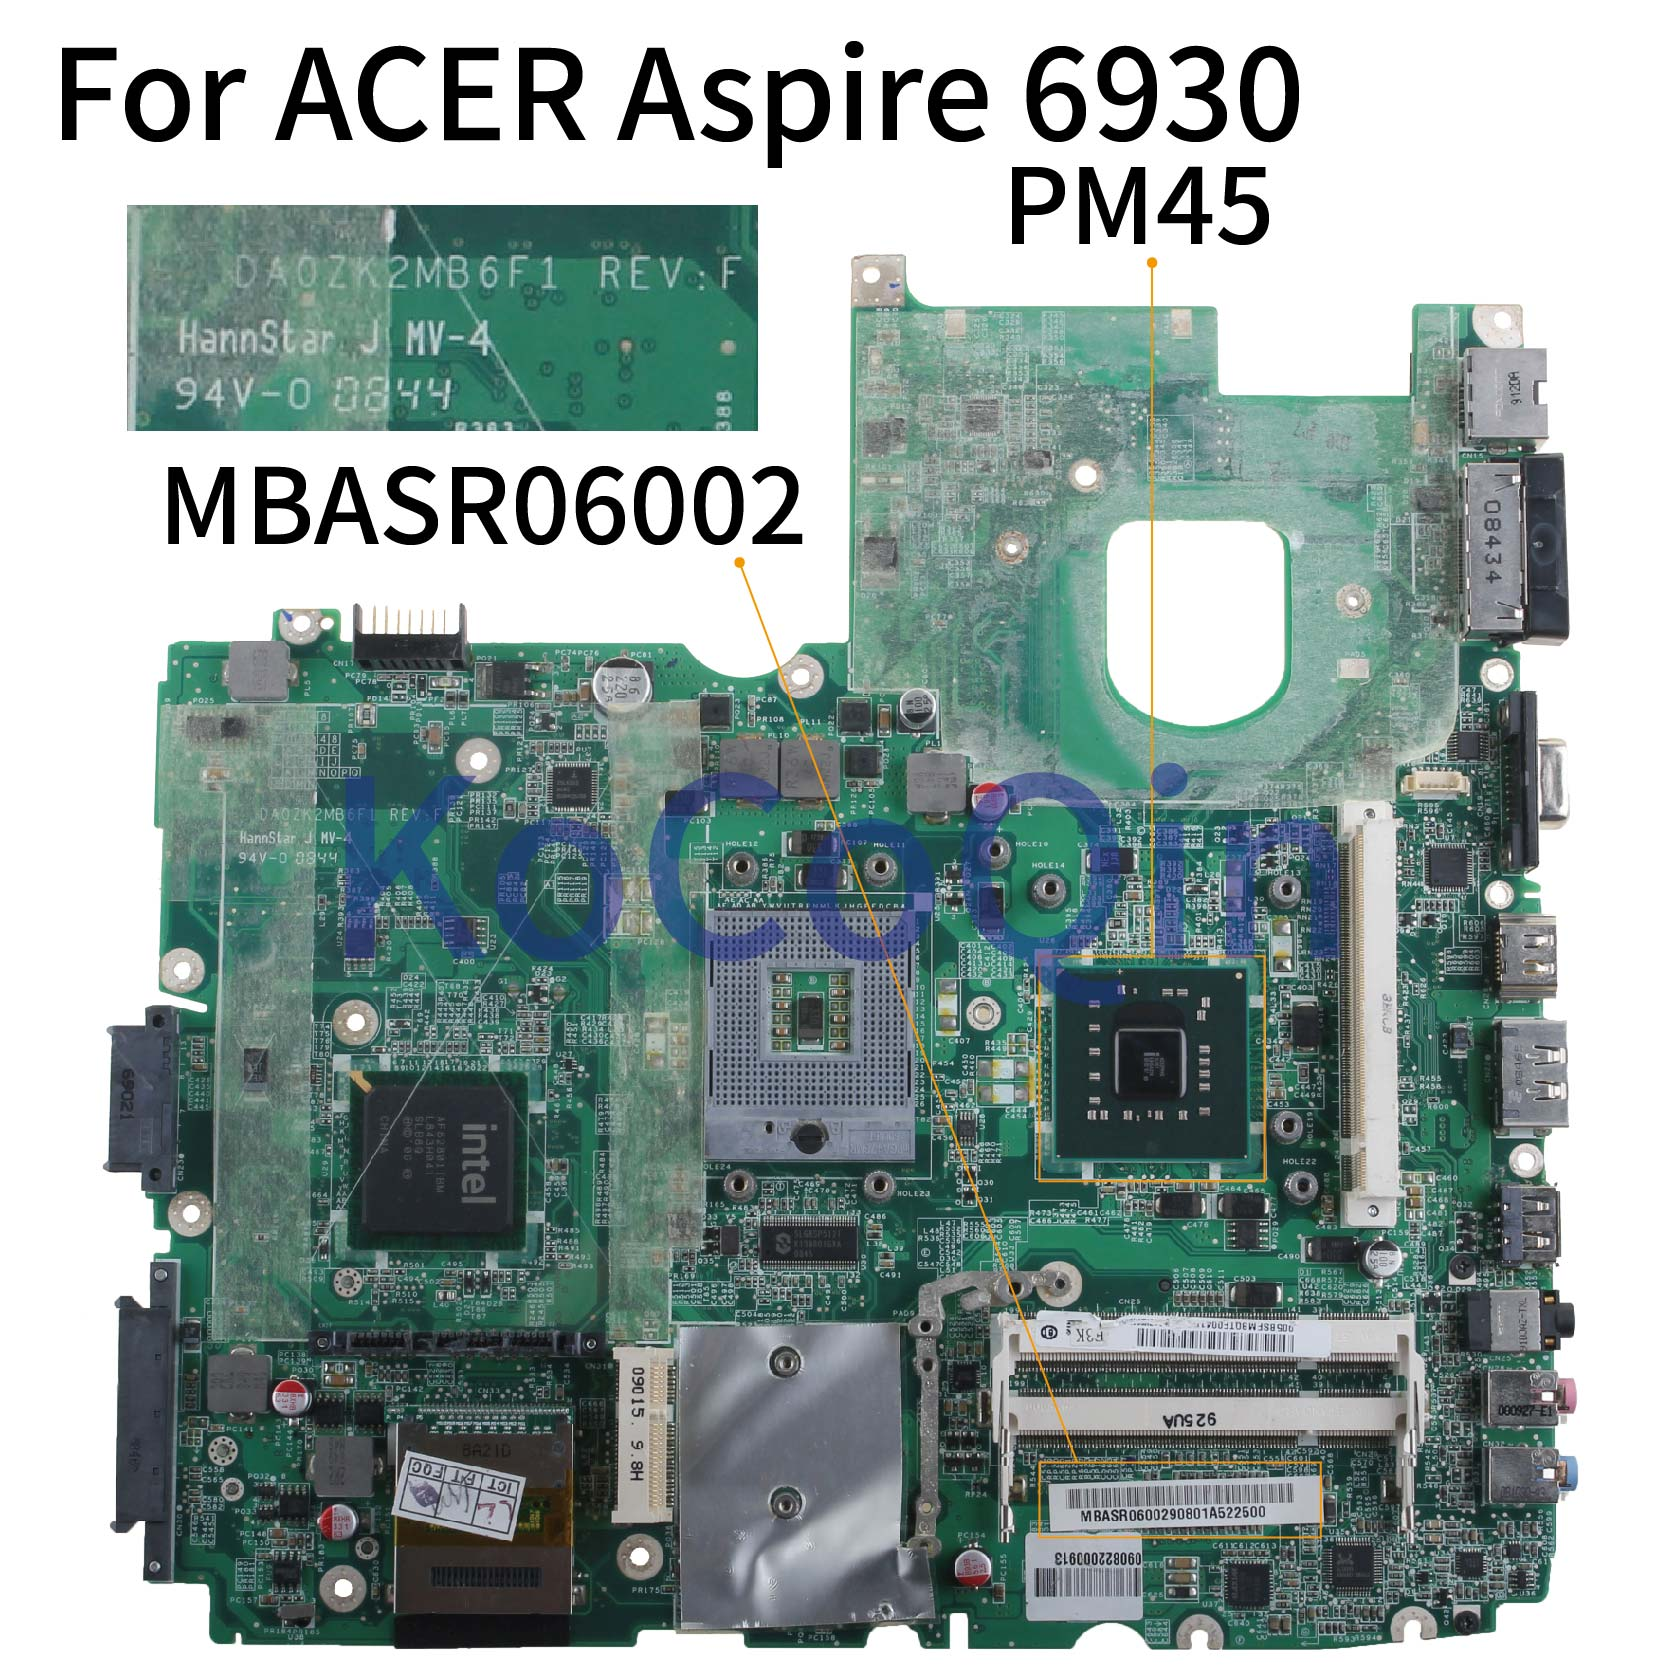 KoCoQin Laptop Motherboard For ACER Aspire 6930 6930G Mainboard DA0ZK2MB6F1 MBASR06002 PM45